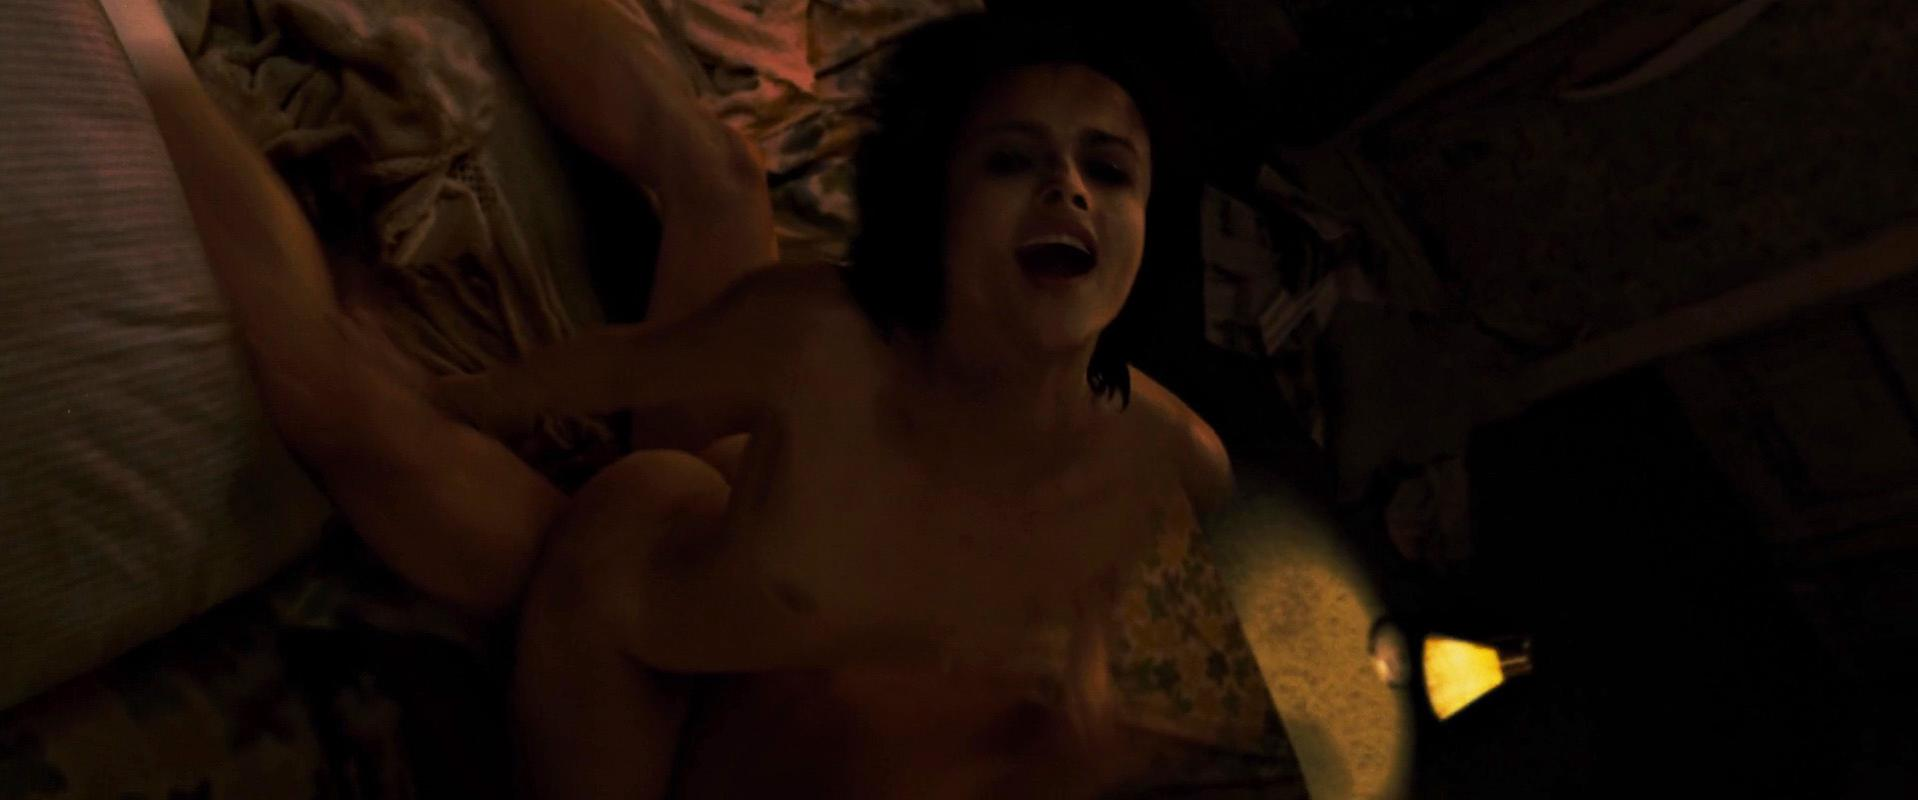 Helena Bonham Carter nude - Fight Club (1999)